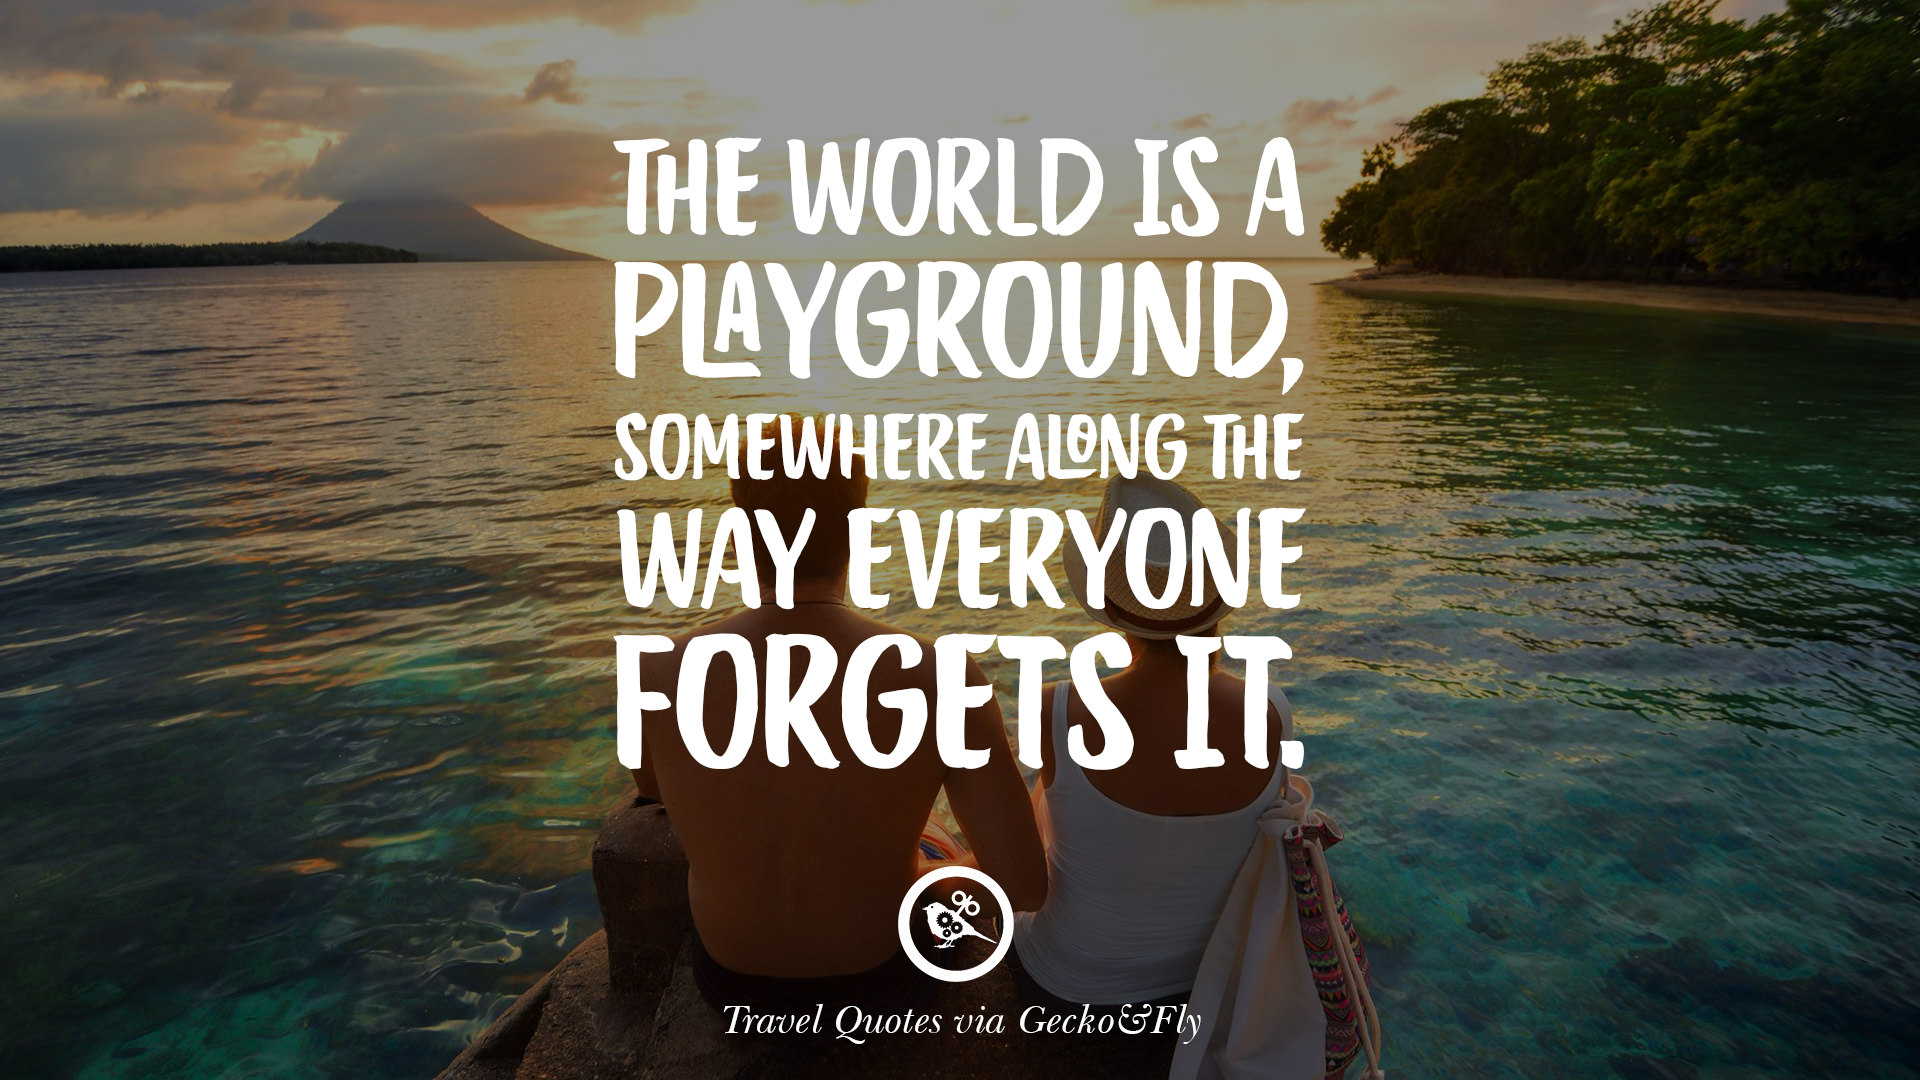 Adventure Quotes Pictures Images: 20 Adventurous Quotes On Traveling And Exploring The World